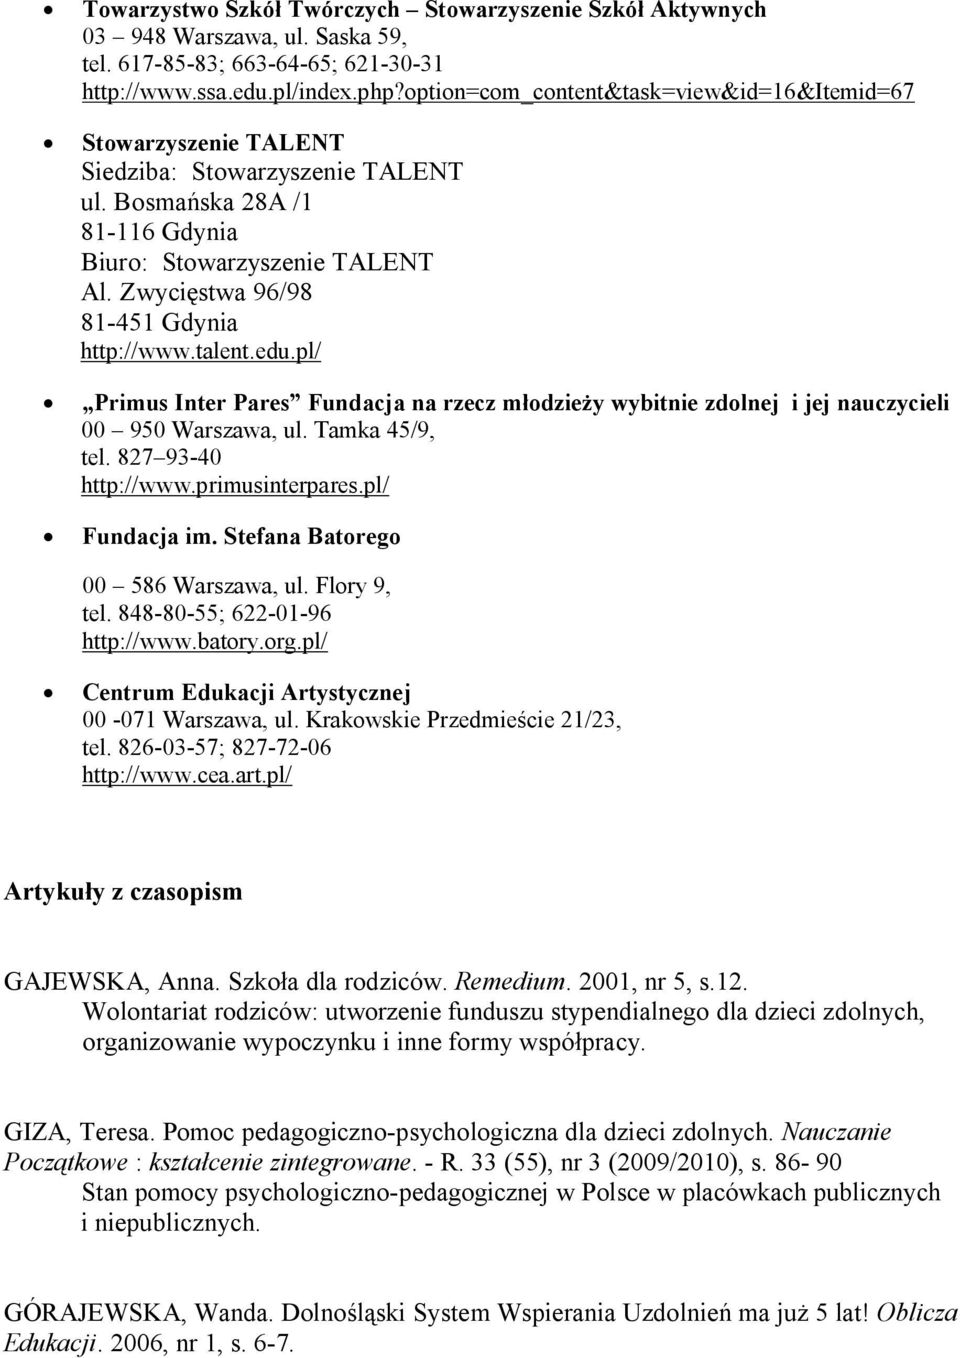 option=com_content&task=view&id=16&itemid=67 Stowarzyszenie TALENT Siedziba: Stowarzyszenie TALENT ul. Bosmańska 28A /1 81-116 Gdynia Biuro: Stowarzyszenie TALENT Al.